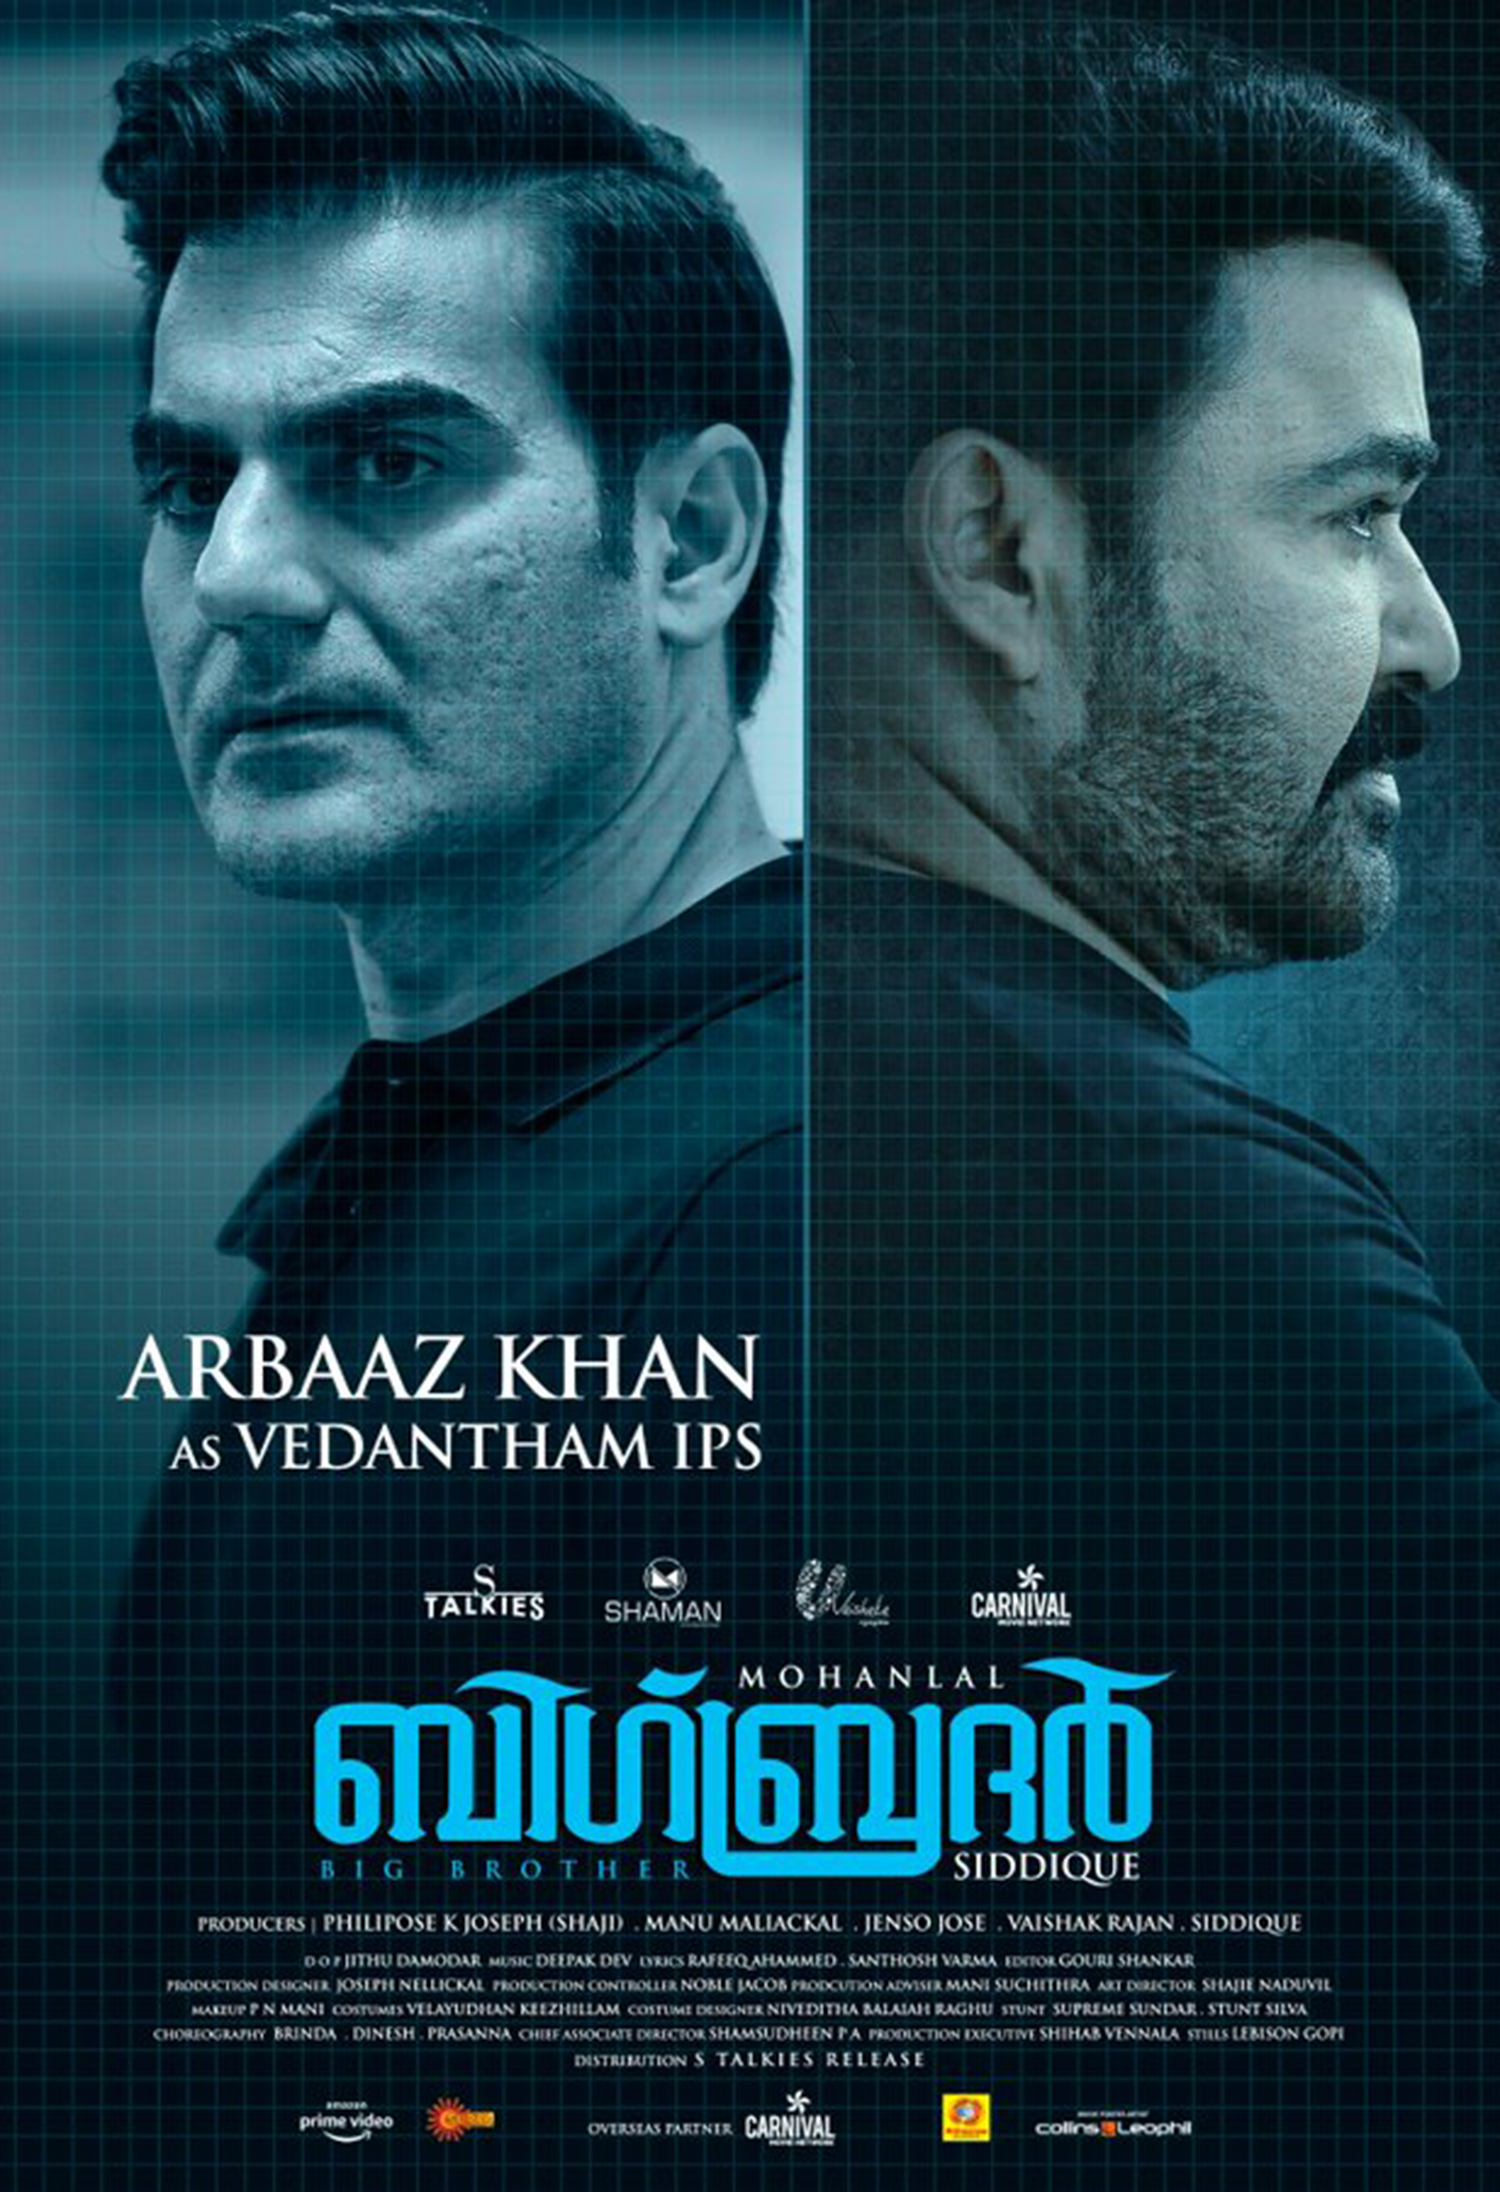 Big Brother,Big Brother character poster,mohanlal,director siddique,anoop menon,anoop menon in Big Brother,Big Brother anoop menon's character poster,arbaaz khan,arbaaz khan in Big Brother,arbaaz khan character poster Big Brother,mohanlal's film news,mohanlal's Big Brother latest news